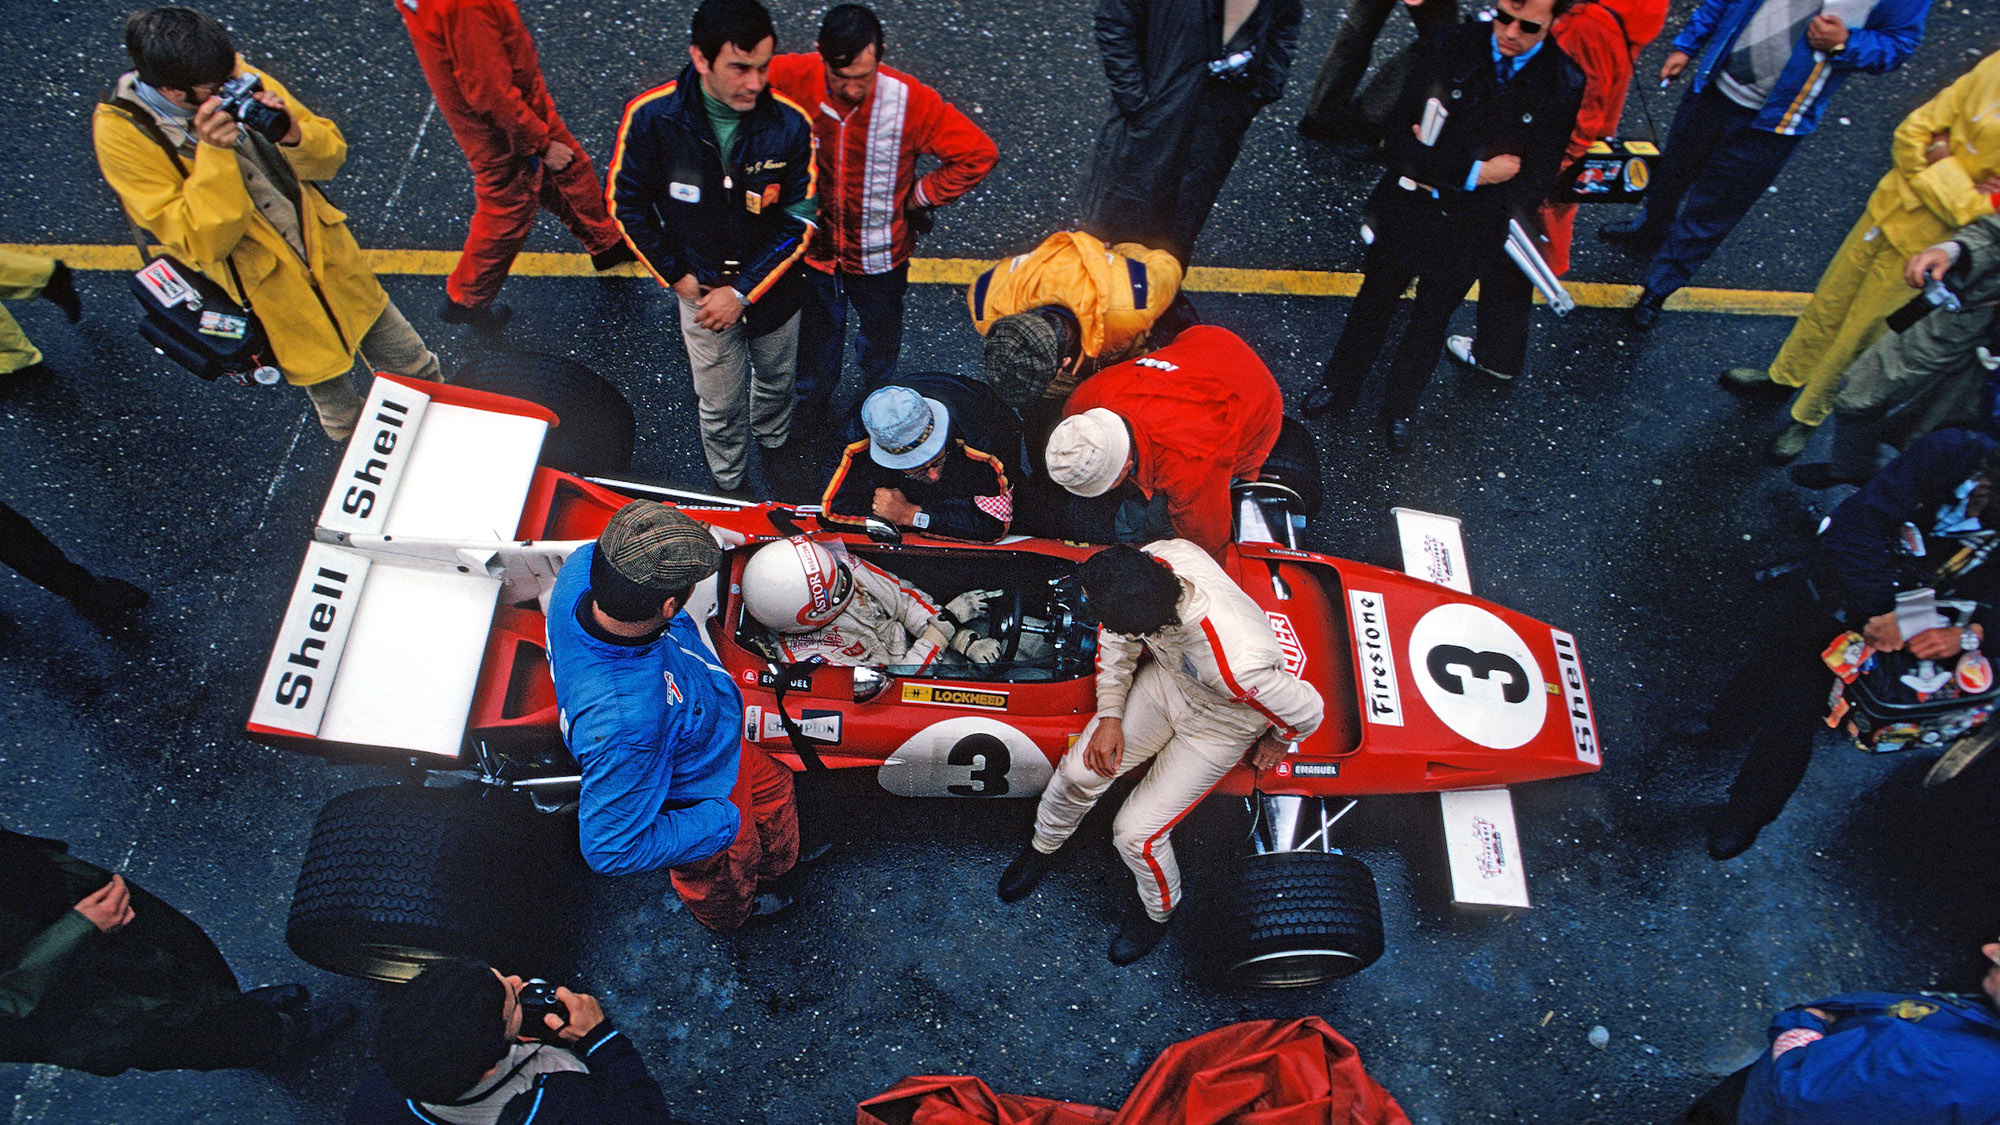 Clay Regazzoni and Jacky Ickx in the pits at the 1971 Dutch grand Prix